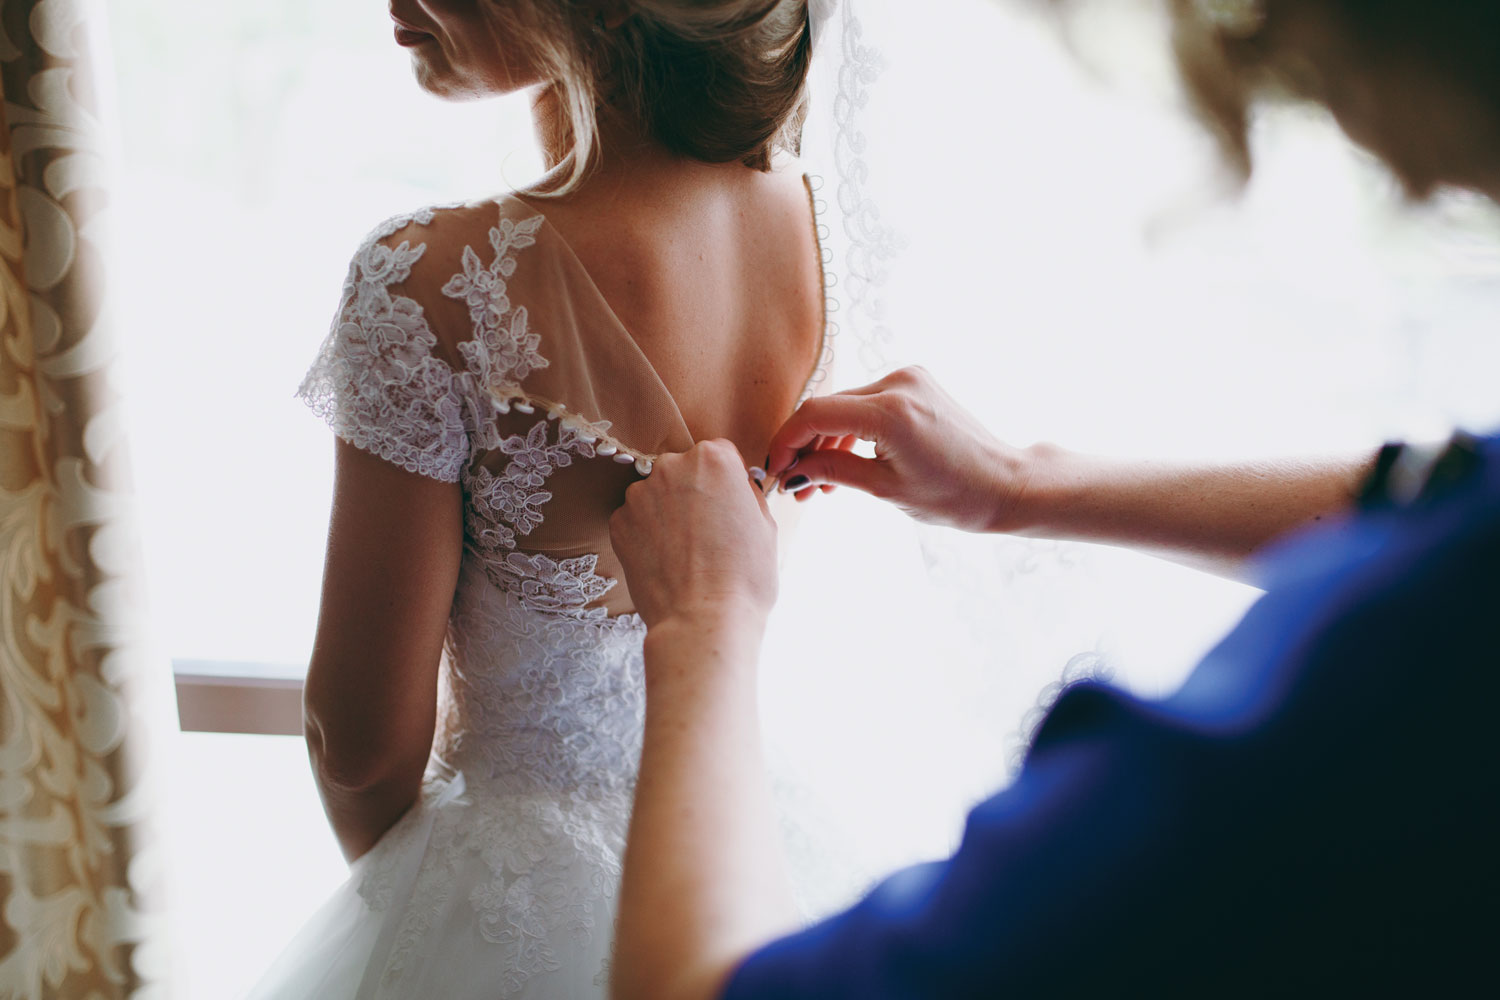 Dress shopping tips for the bride-to-be